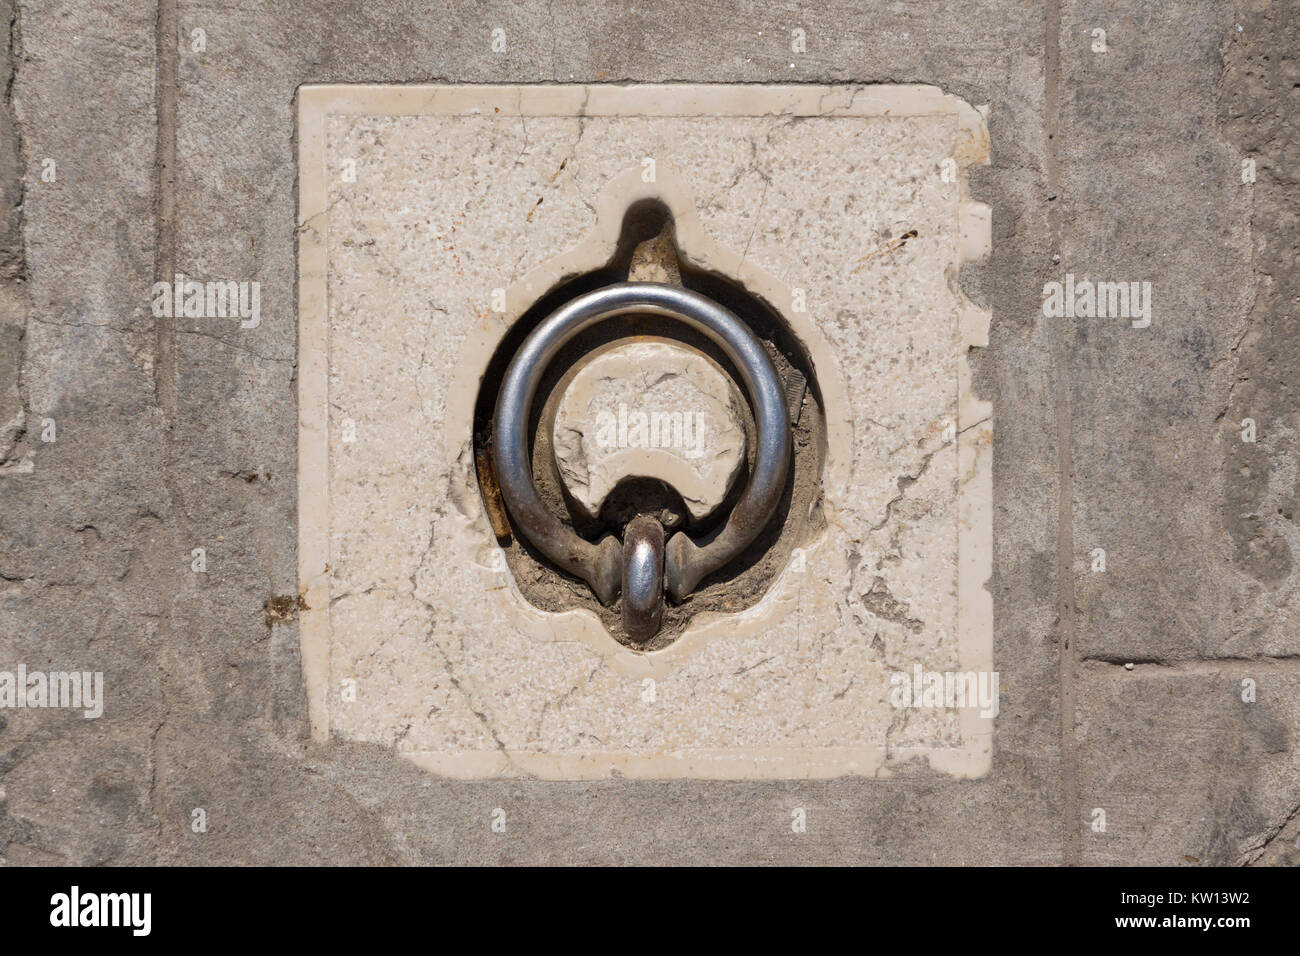 A typical mooring ring in Murano, Venice - Stock Image